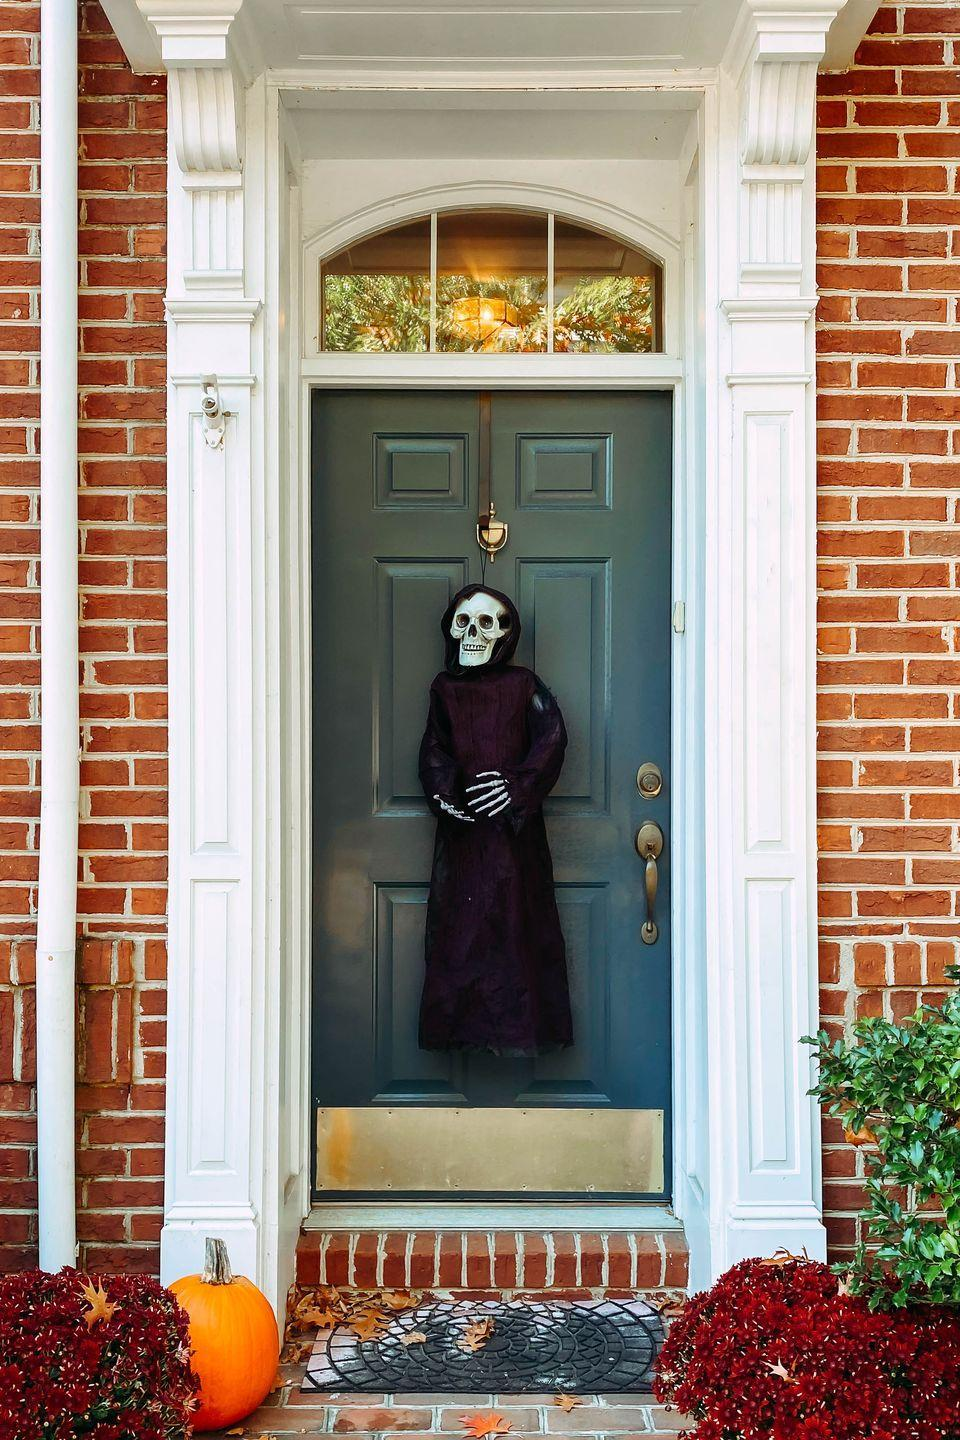 <p>No crafting required to create this eerie door decor. Simply head to the craft store, buy what you need, and tack it up on the door. To give it your own twist, try adding gauze strips or town fabric around the door frame with plastic spiders attached.</p>